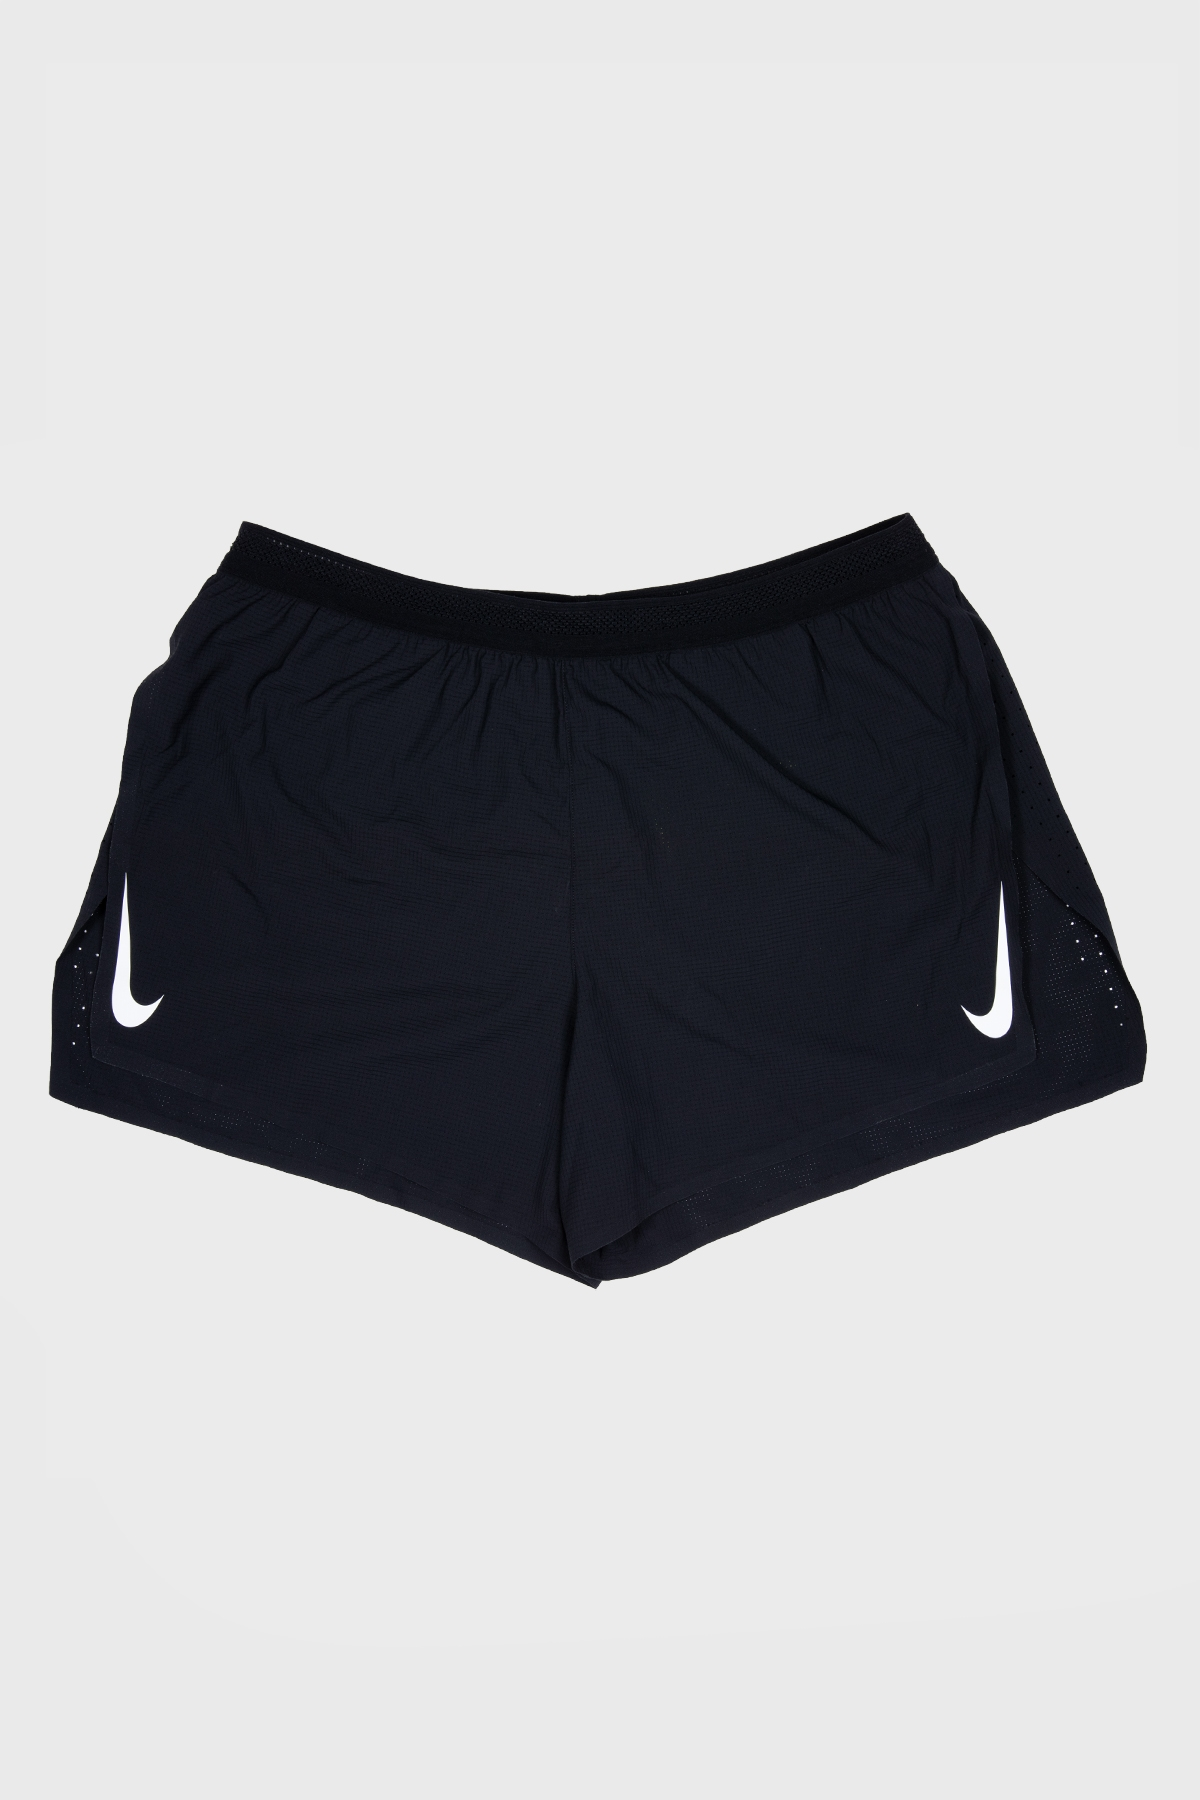 Nike - AeroSwift short - Black